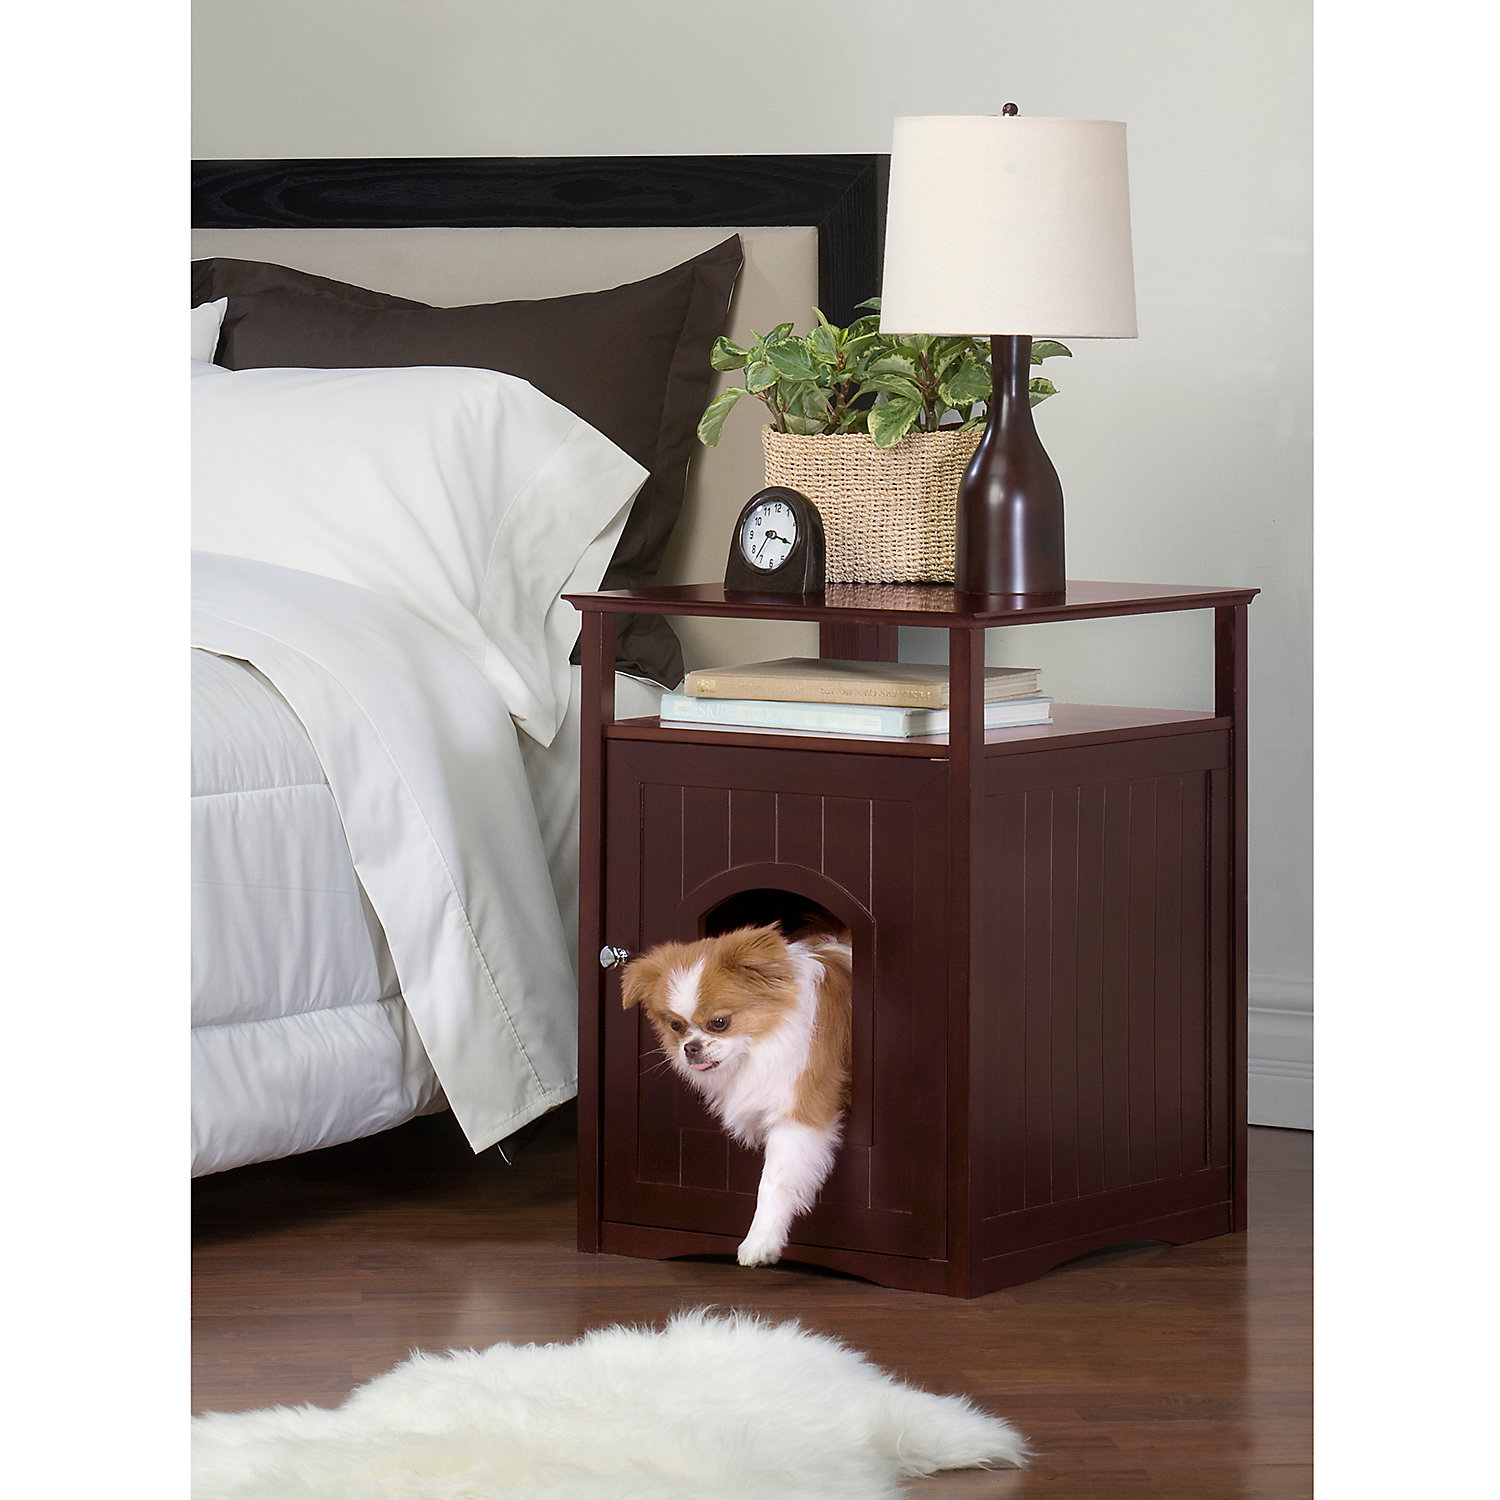 Merry Products Cat Washroom Night Stand Pet House In Espresso